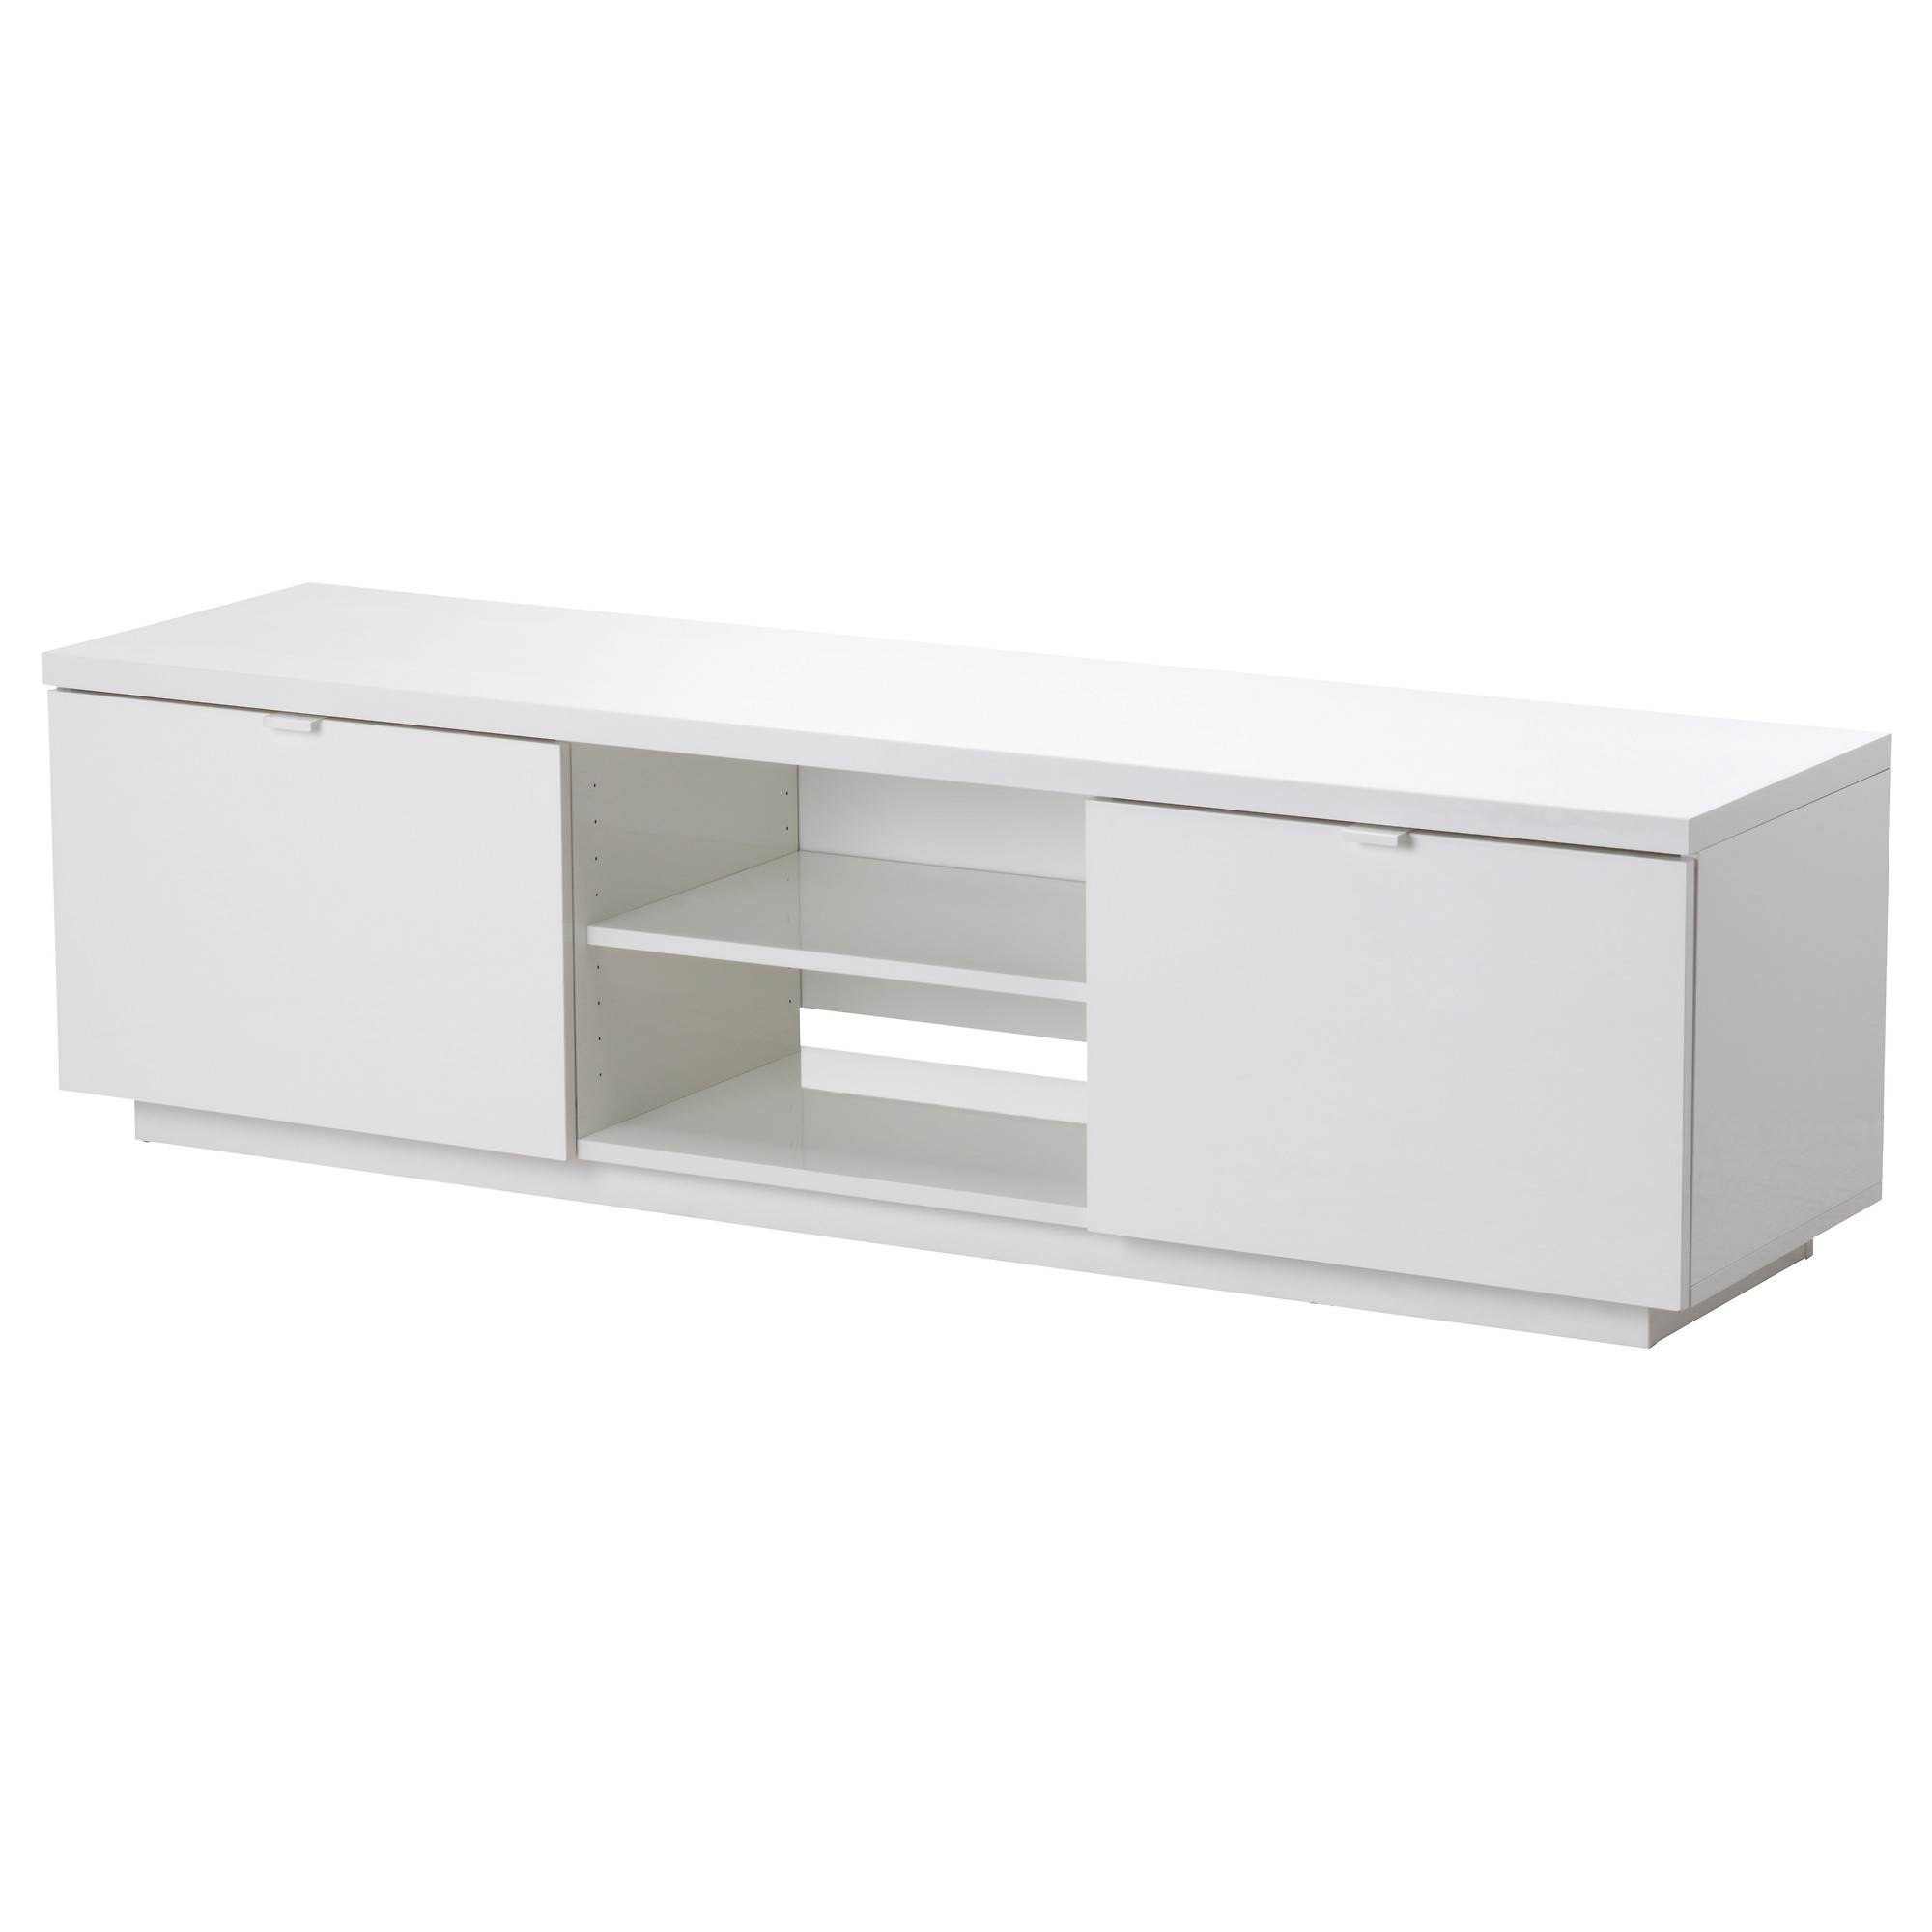 Amazing Small White Tv Cabinet 19 For Your House Interiors With Pertaining To Small White Tv Cabinets (Photo 3 of 15)